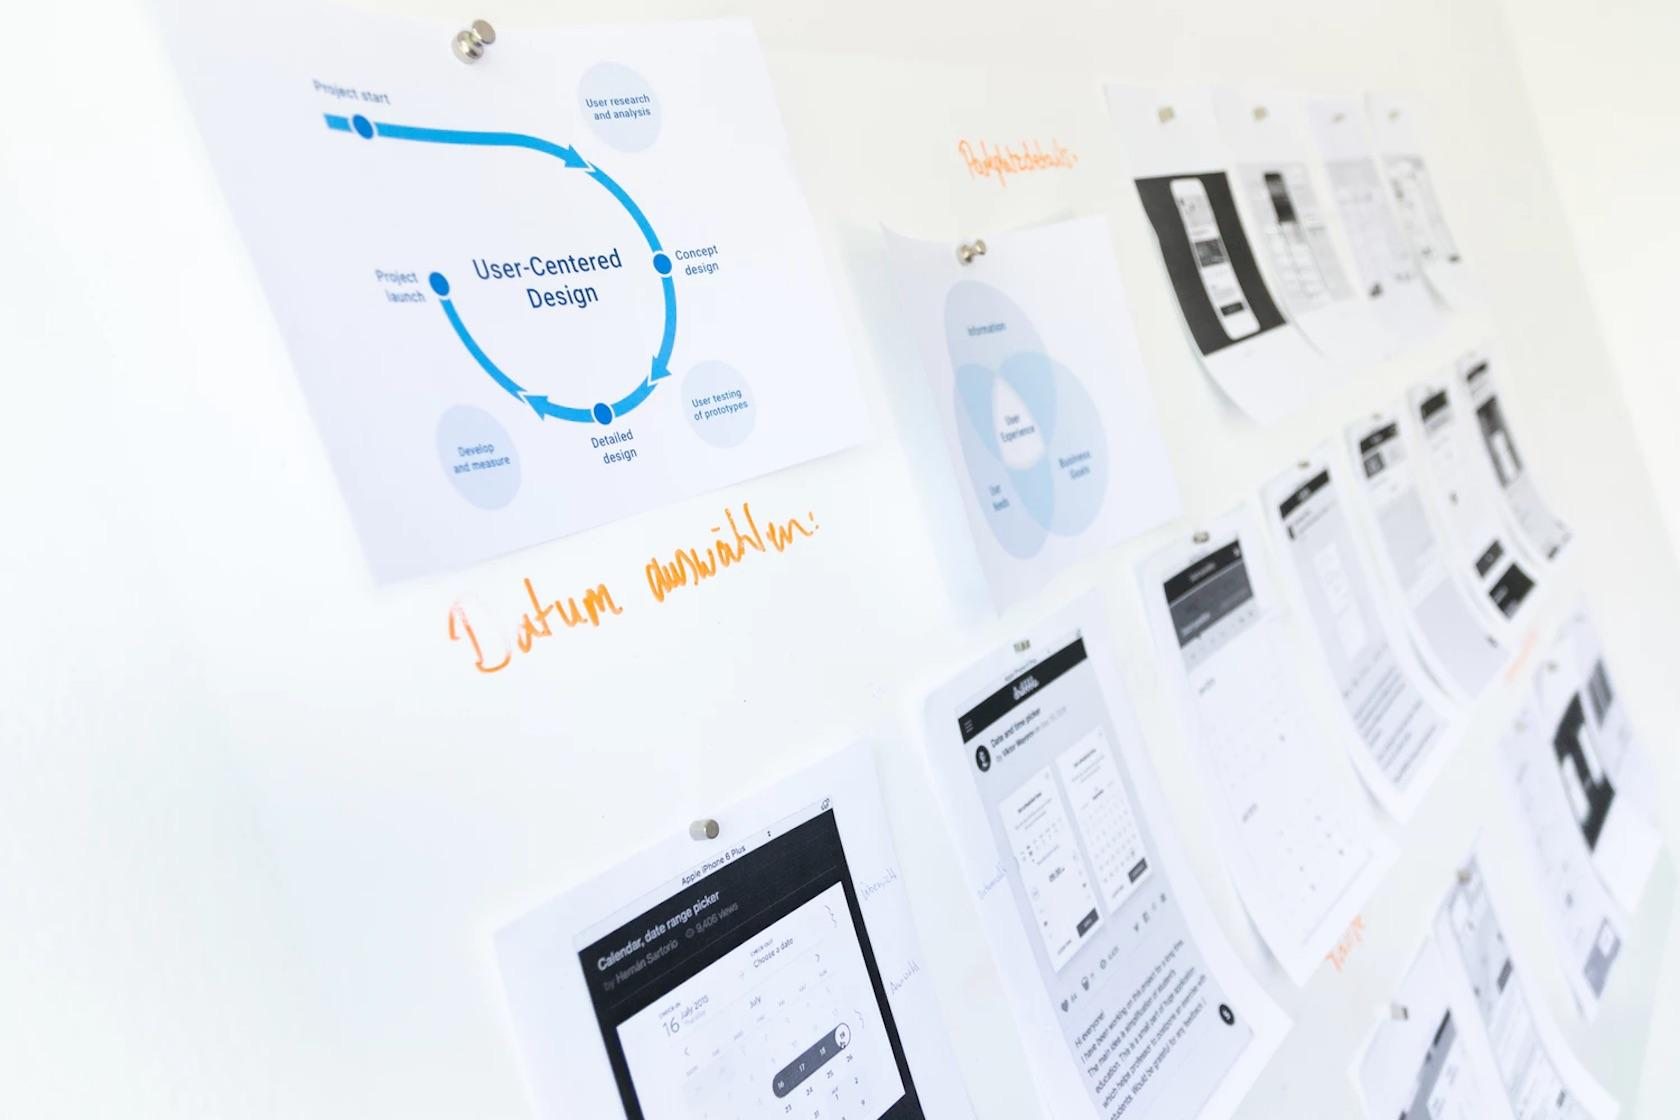 Learning to create wireframes - teach yourself UX design